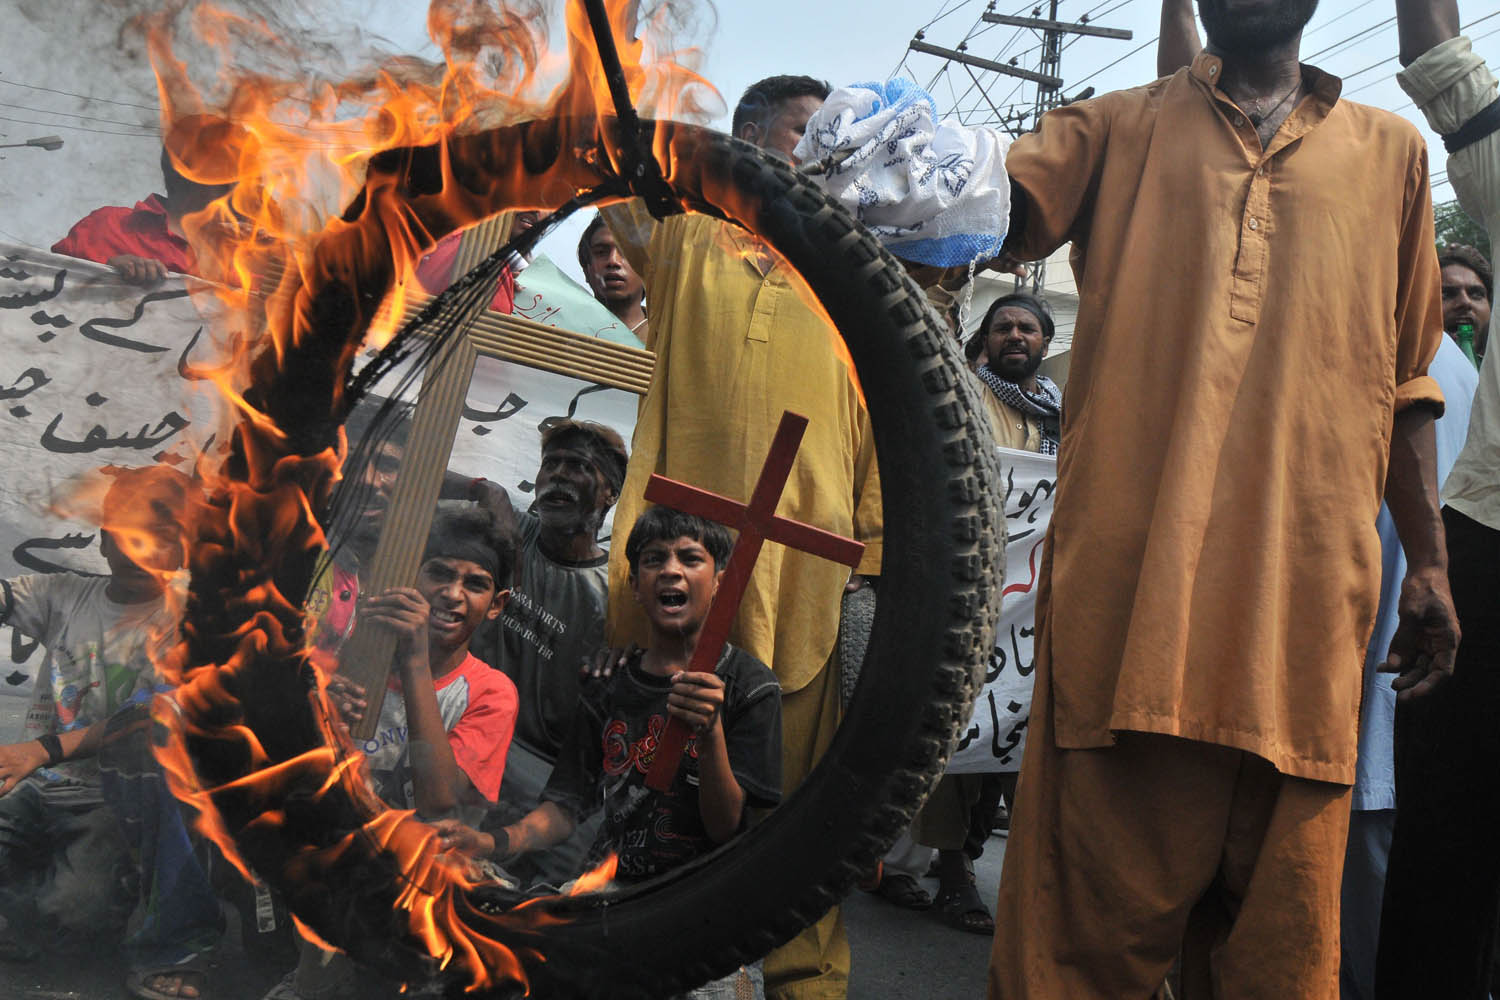 Sept. 23, 2013. Pakistani Christians hold a burning tire as they stage a protest in Lahore against the suicide bombing of a church in Peshawar.